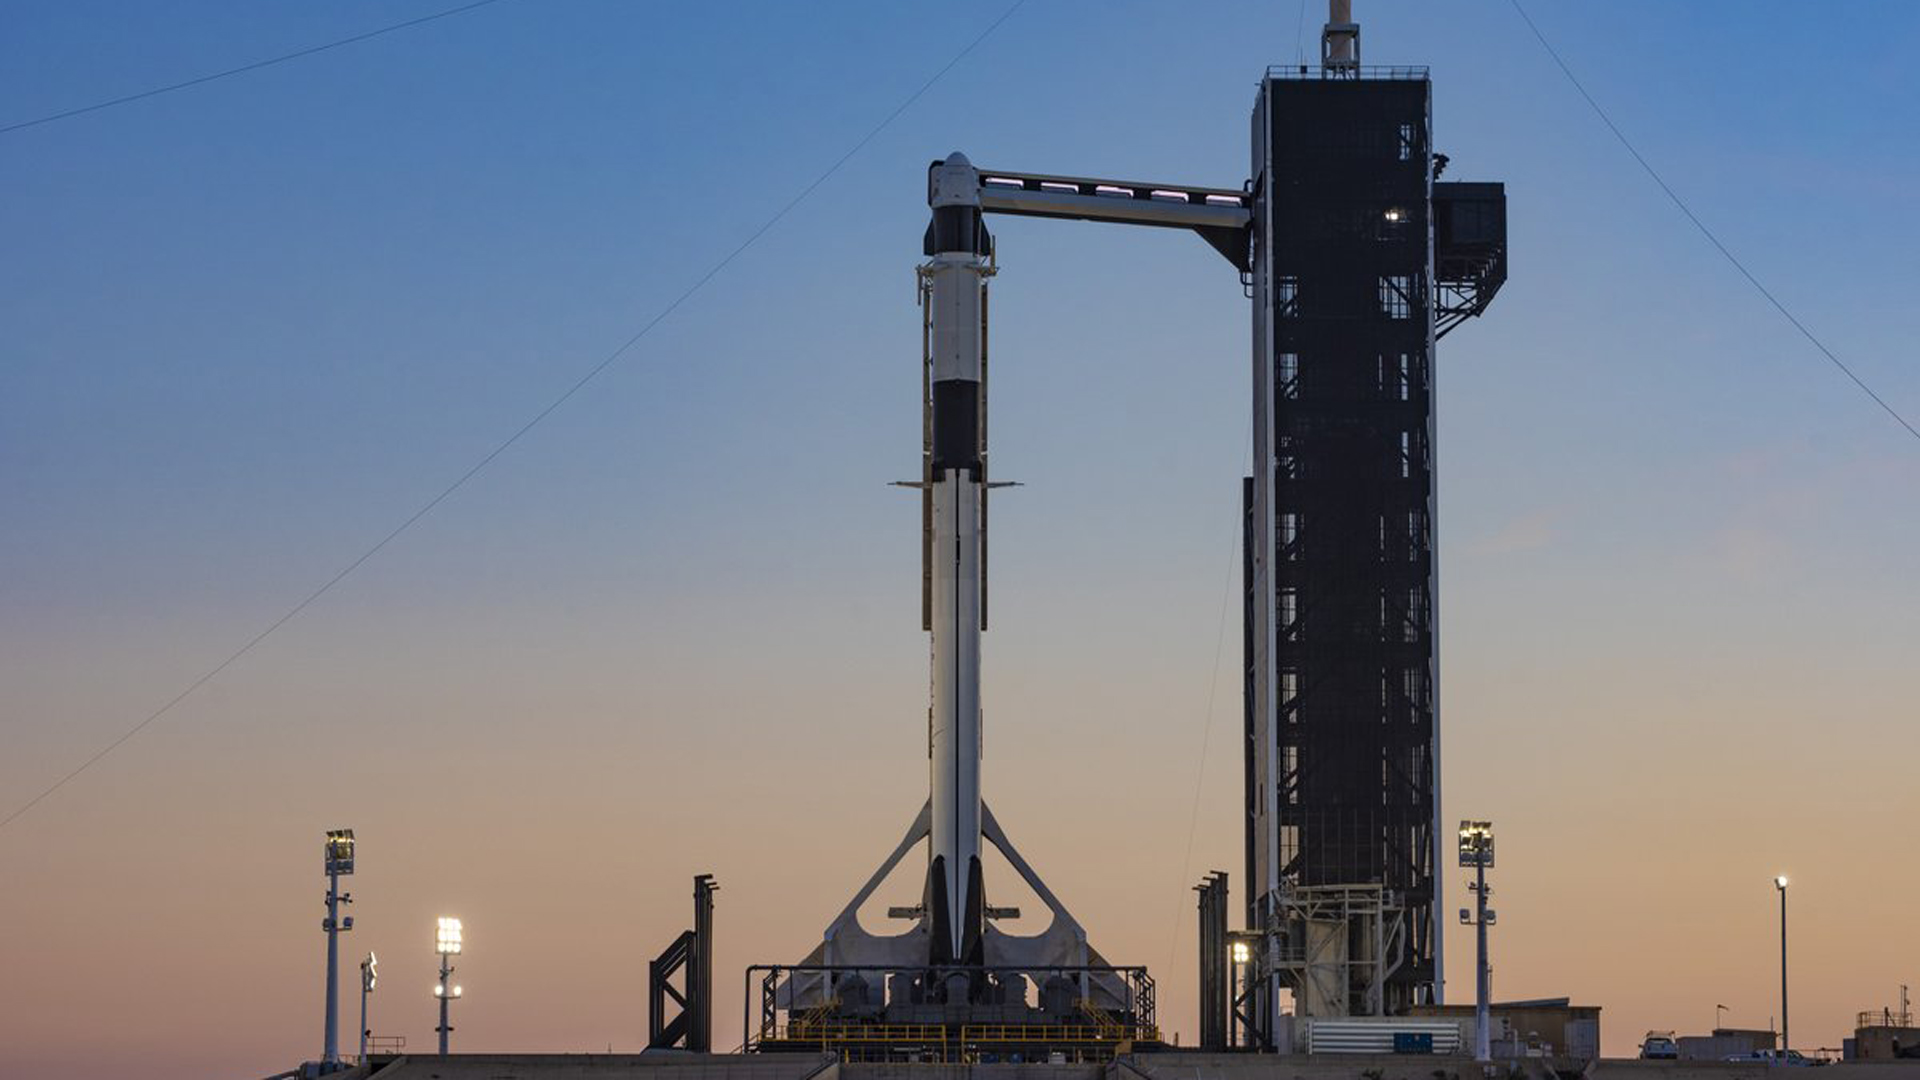 SpaceX's Crew Dragon capsule sits perched atop a Falcon 9 rocket at Kennedy Space Center in Florida on Feb. 28, 2019, ahead of it's planned maiden voyage on March 2, 2019. (Credit: SpaceX)